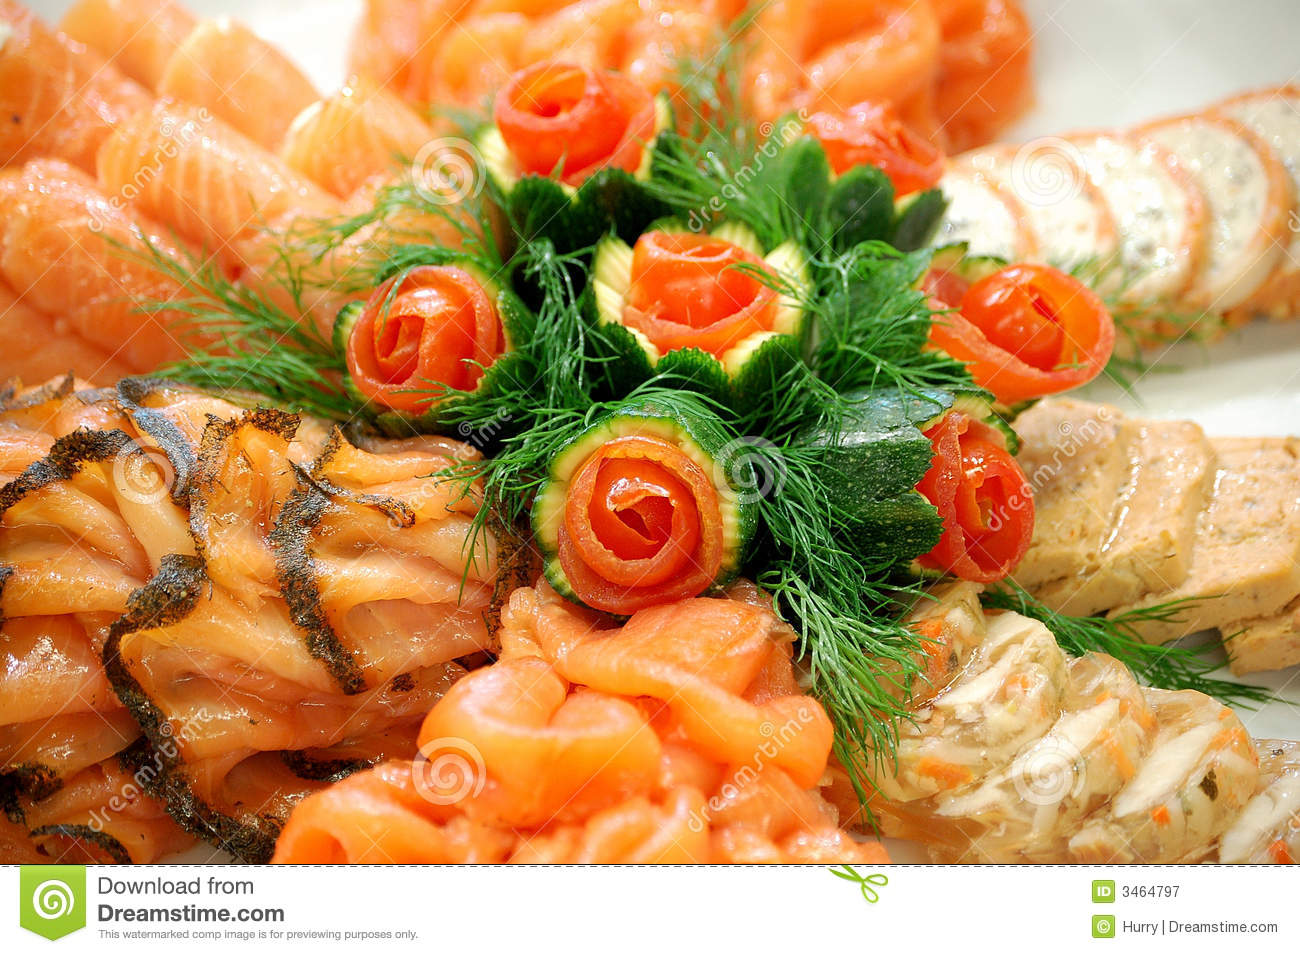 Seafood Dish Royalty Free Stock Photography - Image: 3464797